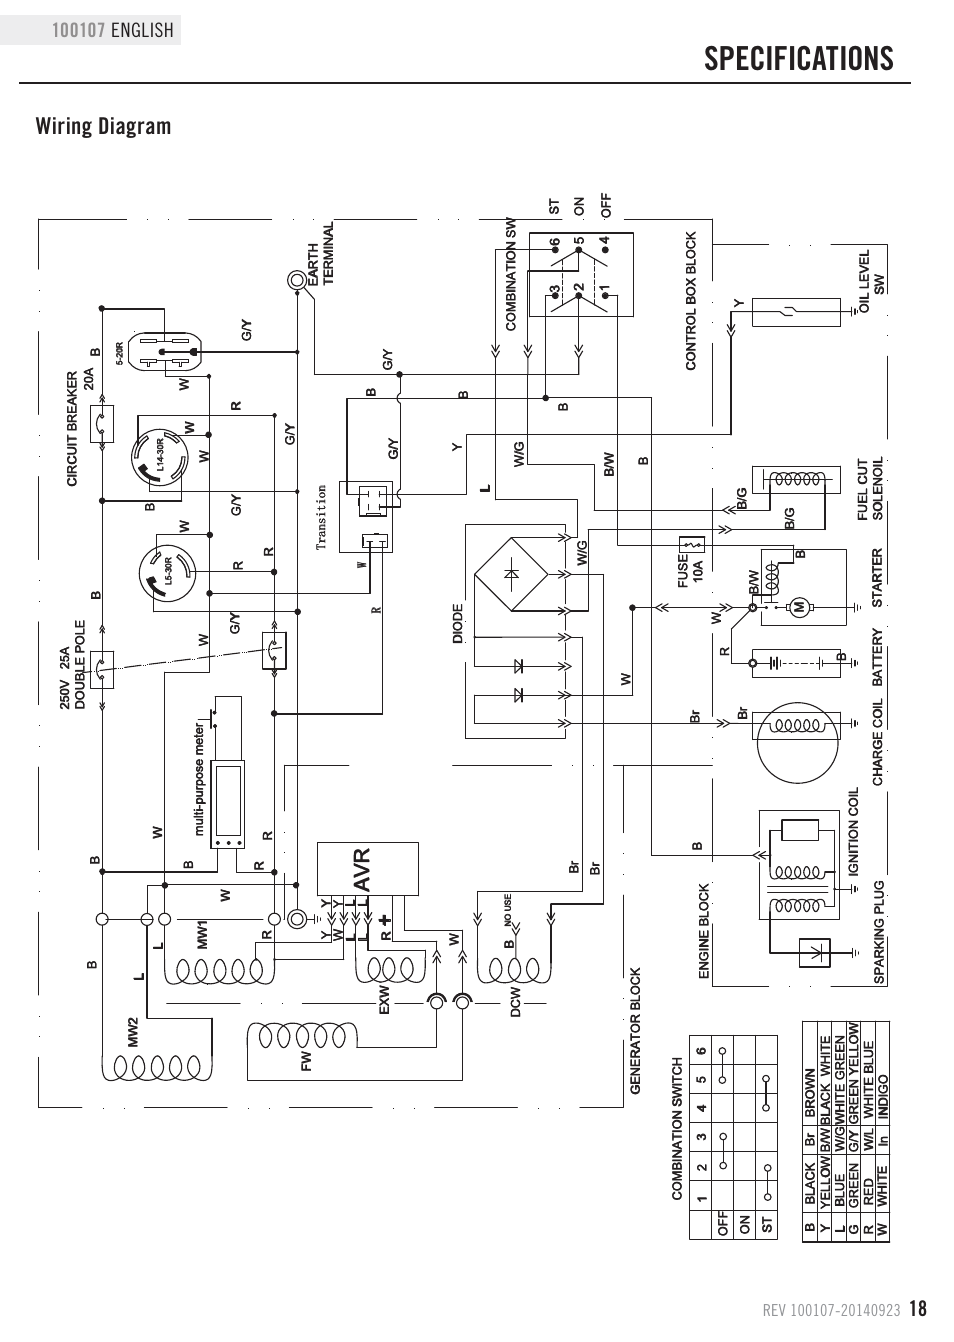 Wiring Diagram For Home Generator Champion Diagrams Opinions About Images Gallery